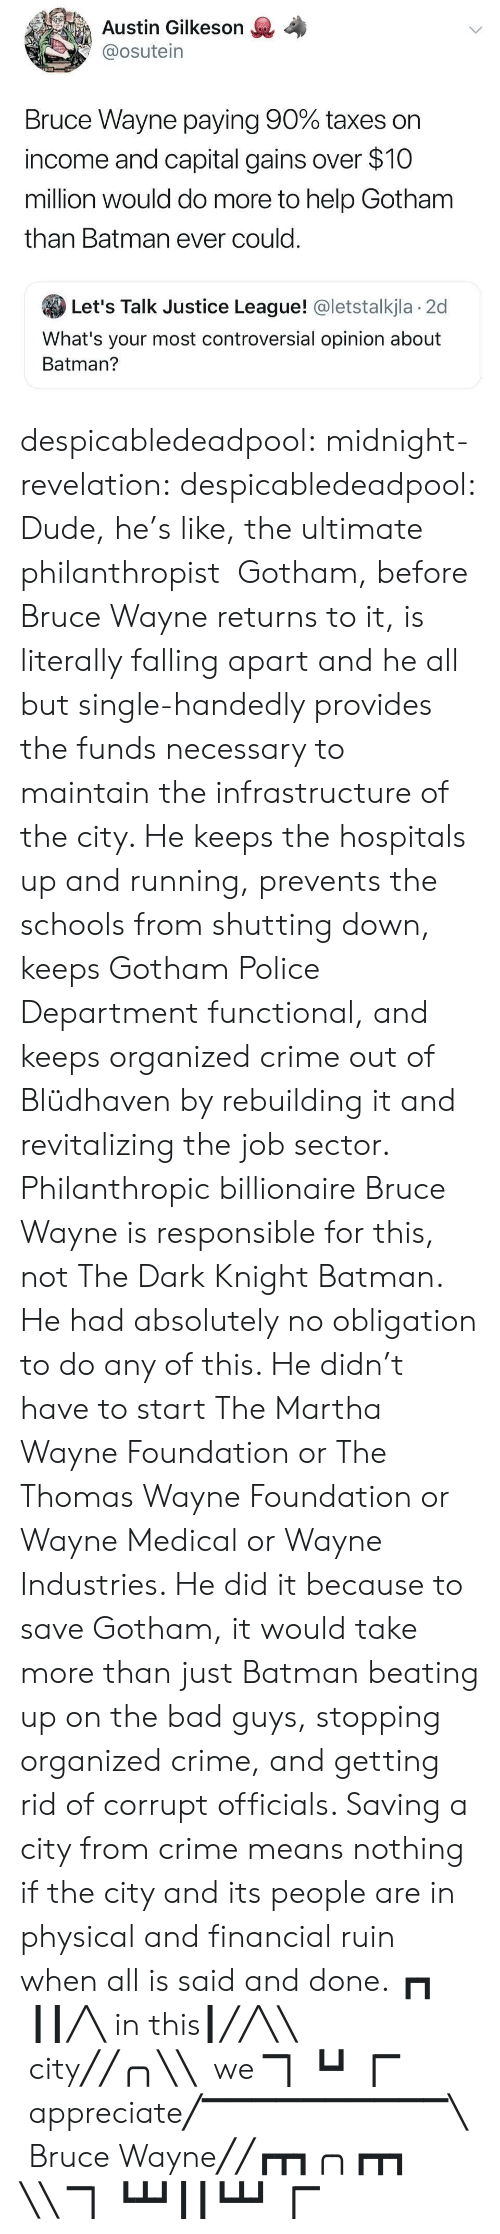 foundation: Austin Gilkeson  @osutein  Bruce Wayne paying 90% taxes on  income and capital gains over $10  million would do more to help Gotham  than Batman ever could.  Let's Talk Justice League! @letstalkjla 2d  What's your most controversial opinion about  Batman? despicabledeadpool:  midnight-revelation: despicabledeadpool:  Dude, he's like, the ultimate philanthropist   Gotham, before Bruce Wayne returns to it, is literally falling apart and he all but single-handedly provides the funds necessary to maintain the infrastructure of the city. He keeps the hospitals up and running, prevents the schools from shutting down, keeps Gotham Police Department functional, and keeps organized crime out of Blüdhaven by rebuilding it and revitalizing the job sector. Philanthropic billionaire Bruce Wayne is responsible for this, not The Dark Knight Batman. He had absolutely no obligation to do any of this. He didn't have to start The Martha Wayne Foundation or The Thomas Wayne Foundation or Wayne Medical or Wayne Industries. He did it because to save Gotham, it would take more than just Batman beating up on the bad guys, stopping organized crime, and getting rid of corrupt officials. Saving a city from crime means nothing if the city and its people are in physical and financial ruin when all is said and done.  ┏┓  ┃┃╱╲ in this┃╱╱╲╲  city╱╱╭╮╲╲  we ▔▏┗┛▕▔    appreciate╱▔▔▔▔▔▔▔▔▔▔╲  Bruce Wayne╱╱┏┳┓╭╮┏┳┓ ╲╲ ▔▏┗┻┛┃┃┗┻┛▕▔